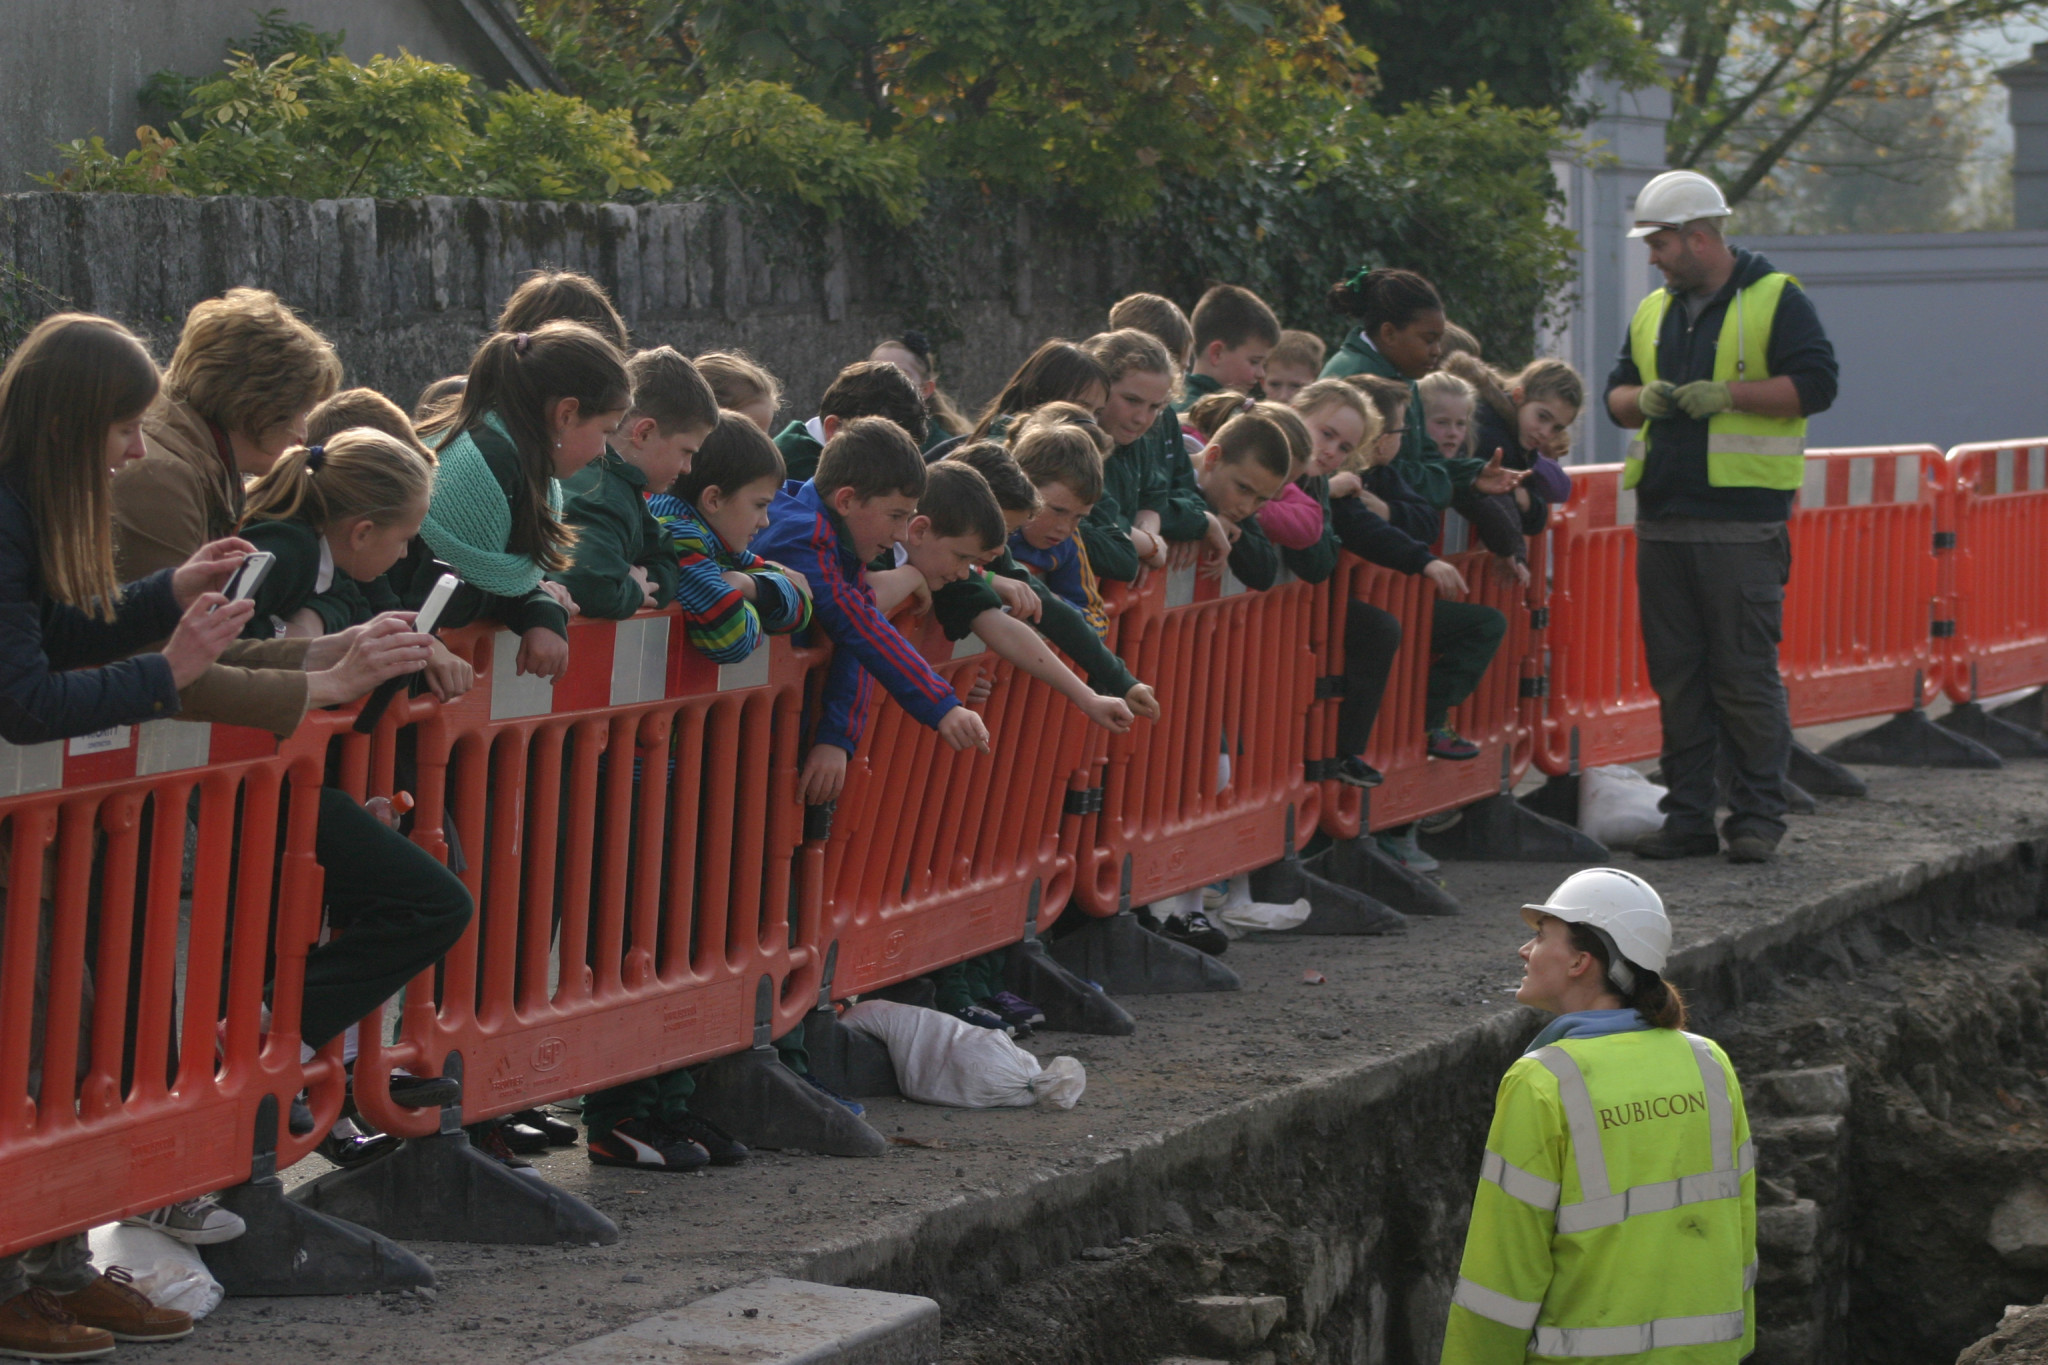 Excavating Medieval Buttevant: Some Archaeological Images